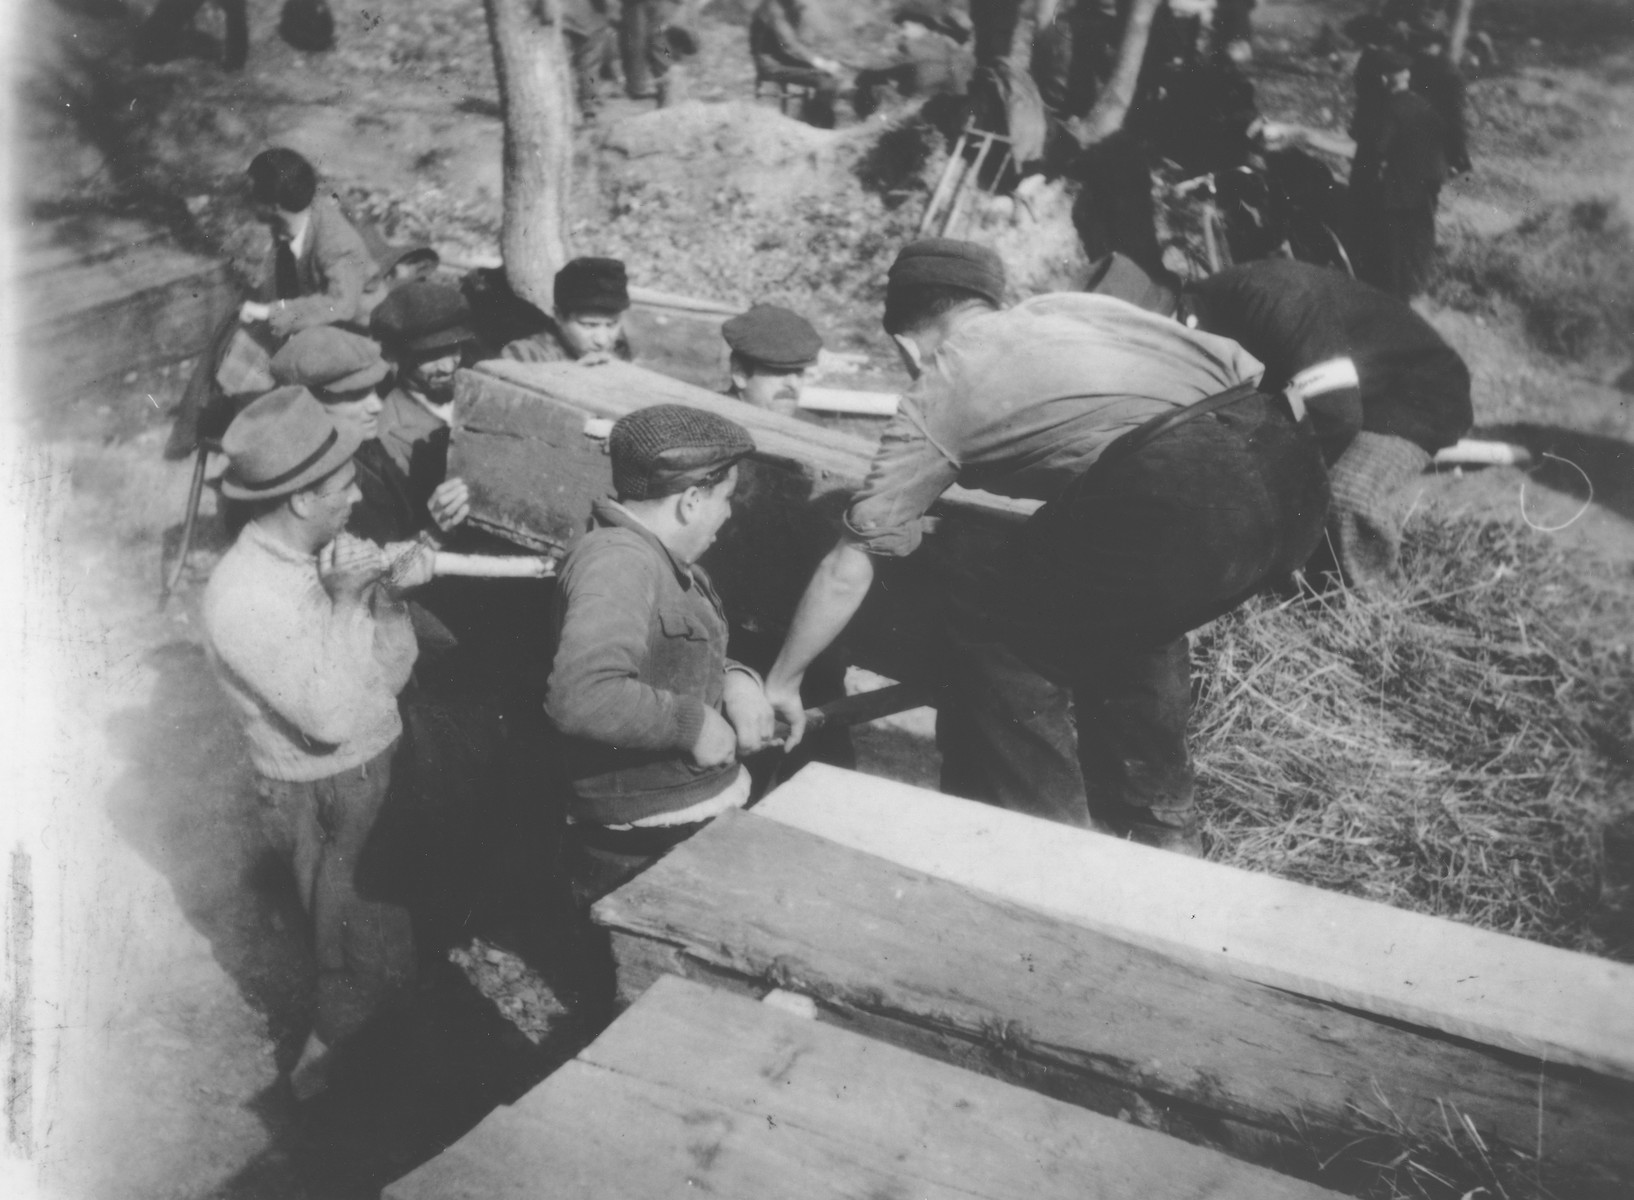 Romanian workmen exhume a coffin containing the body of a Jew killed in the ghetto in Dej.